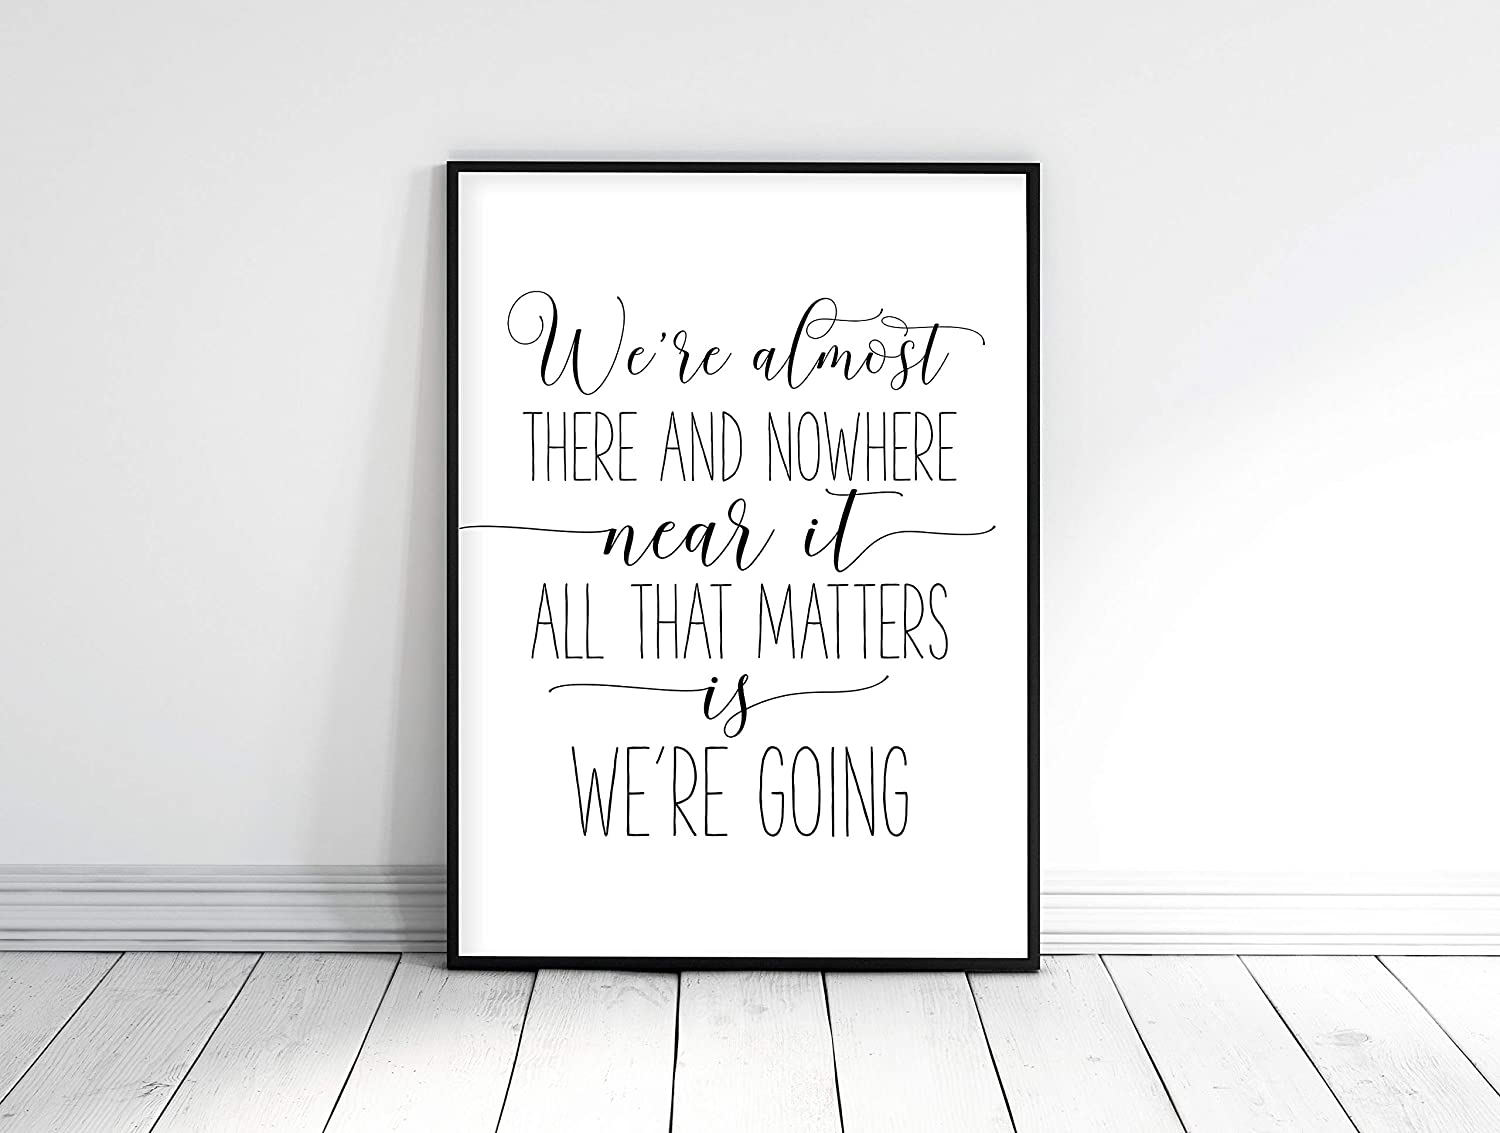 Motivational inspirational quote positive life poster picture print wall art 122